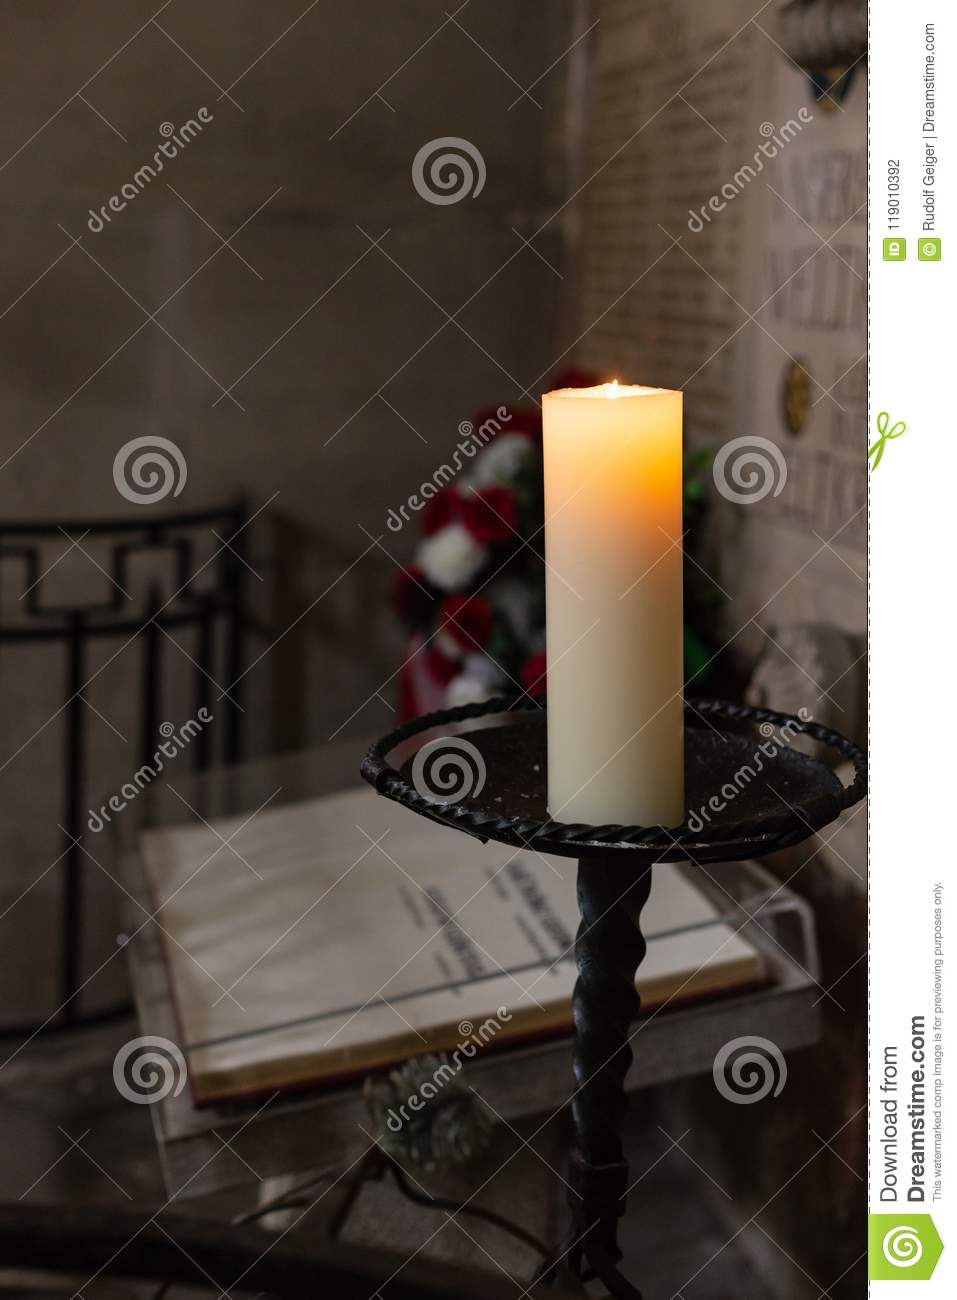 Candlelight In Church Nave Altar Stock Photo - Image of christian